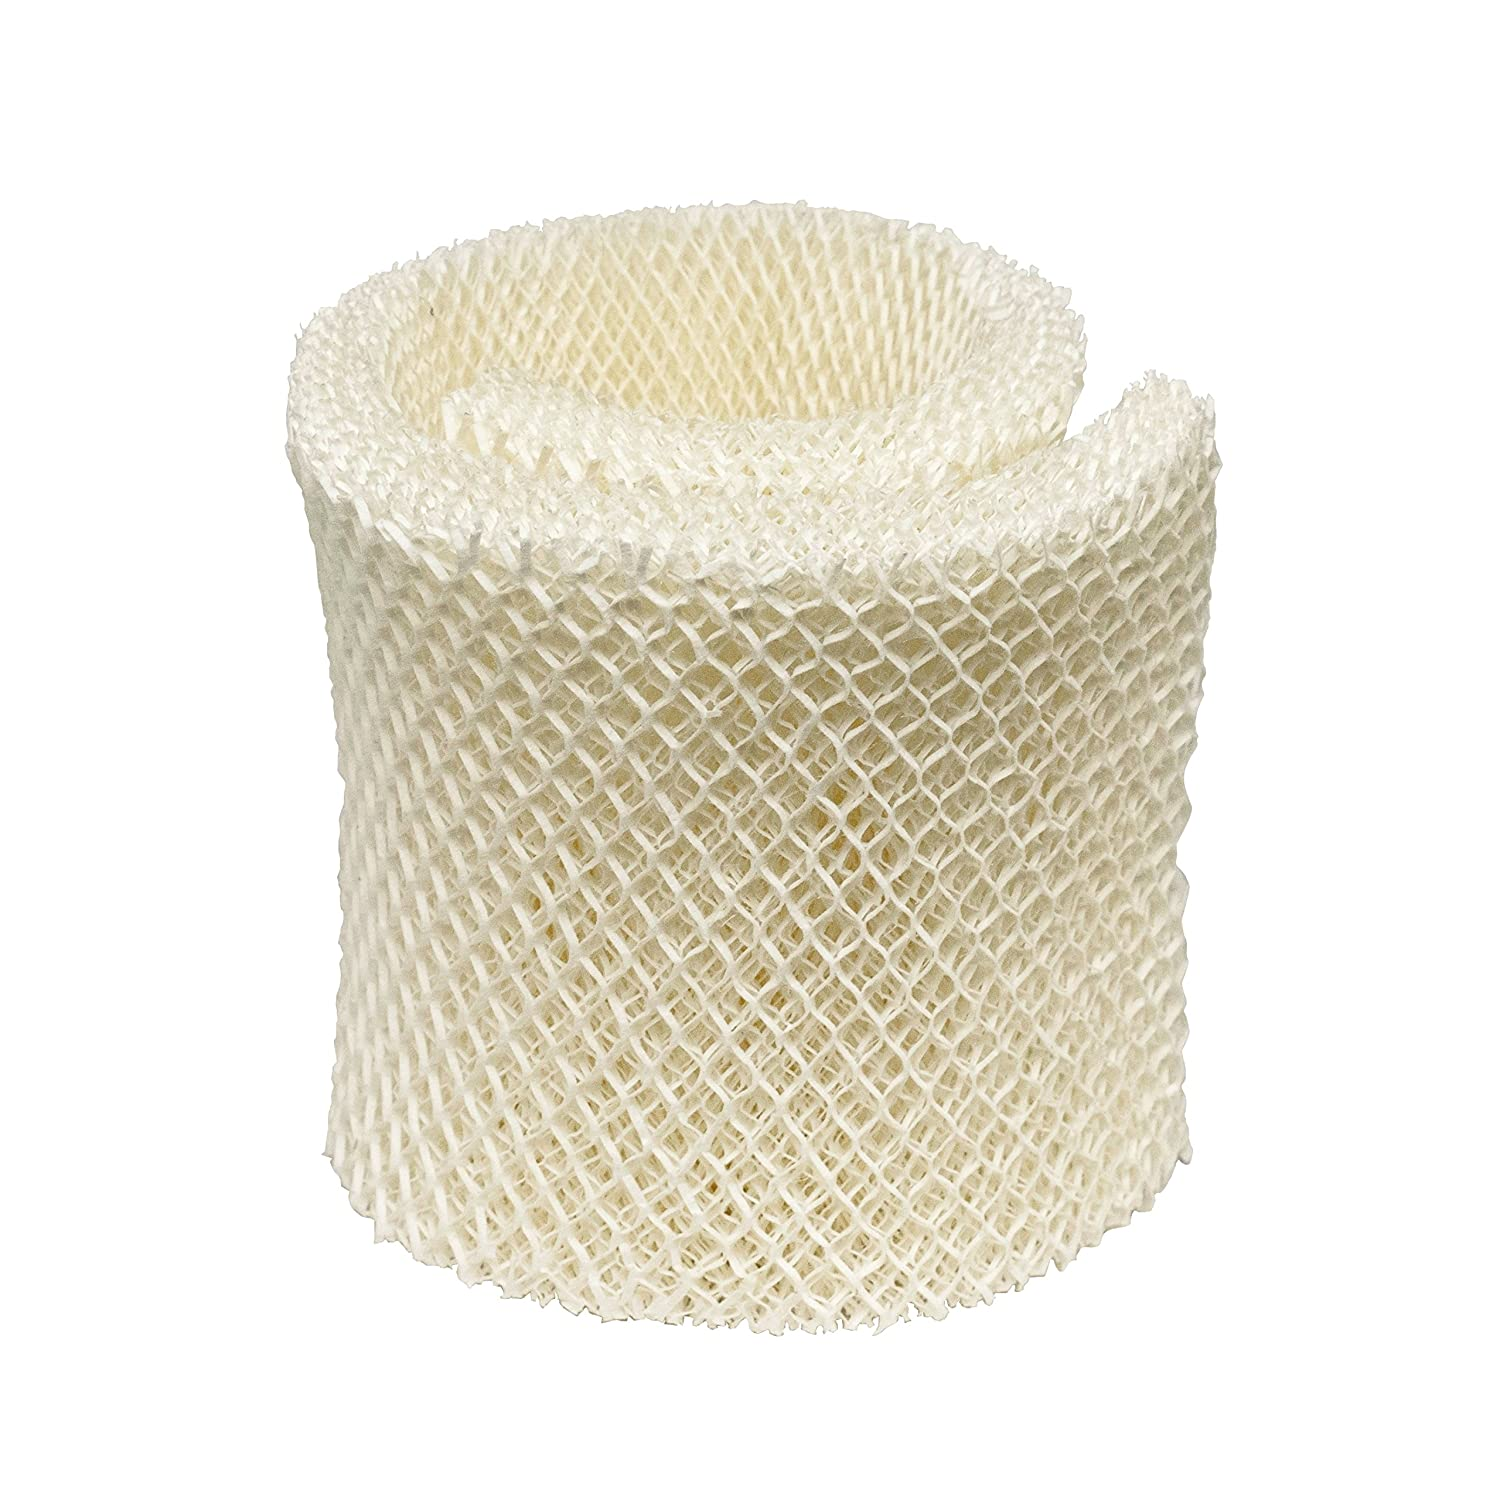 AIRCARE MAF1 Replacement Wicking Humidifier Filter (1)